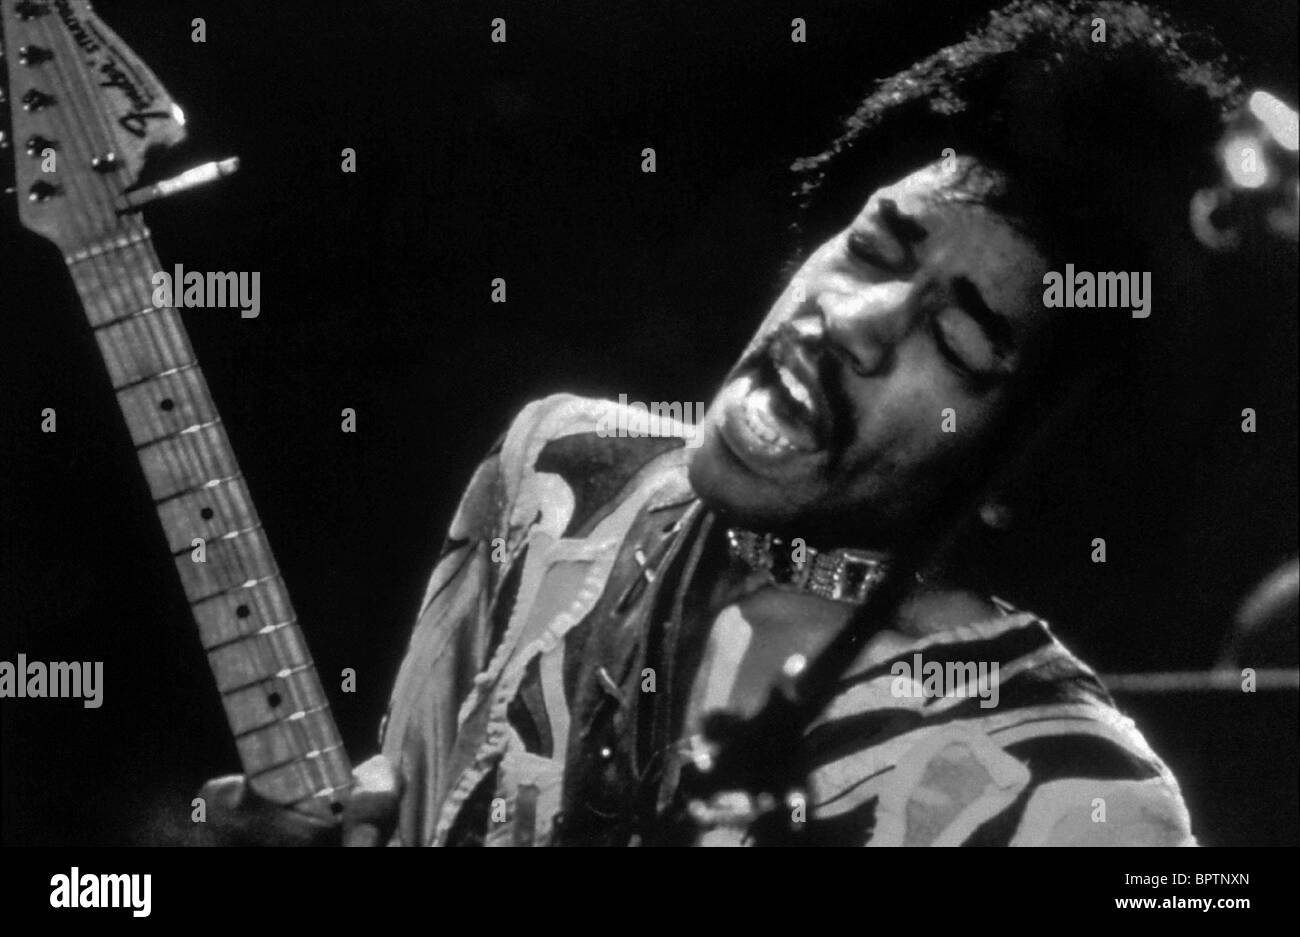 JIMI HENDRIX ROCK MUSICIAN (1970) Stock Photo